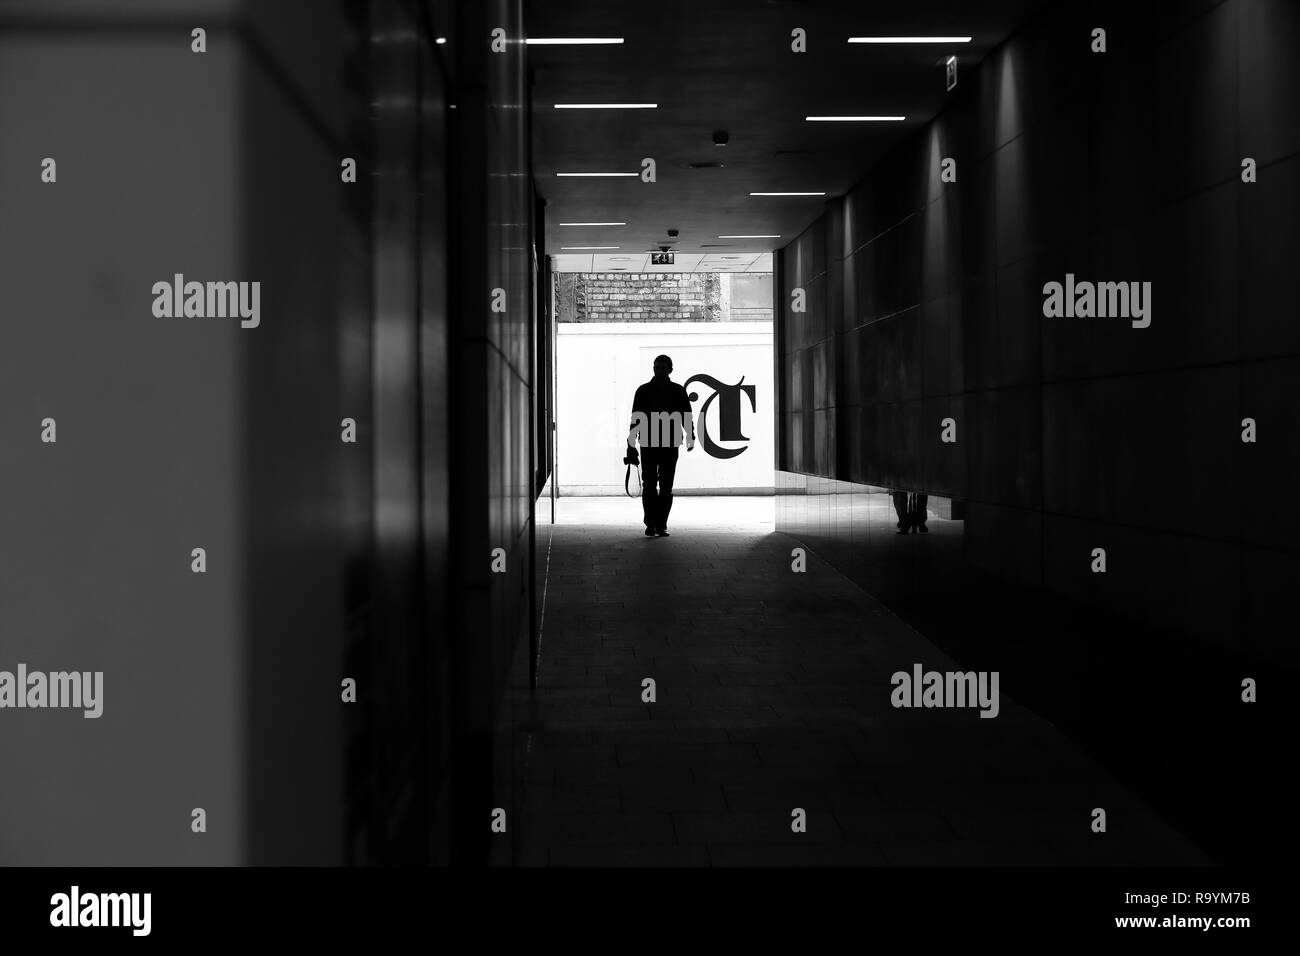 A photographer about to enter a shopping centre in Leeds which is against their policies. - Stock Image